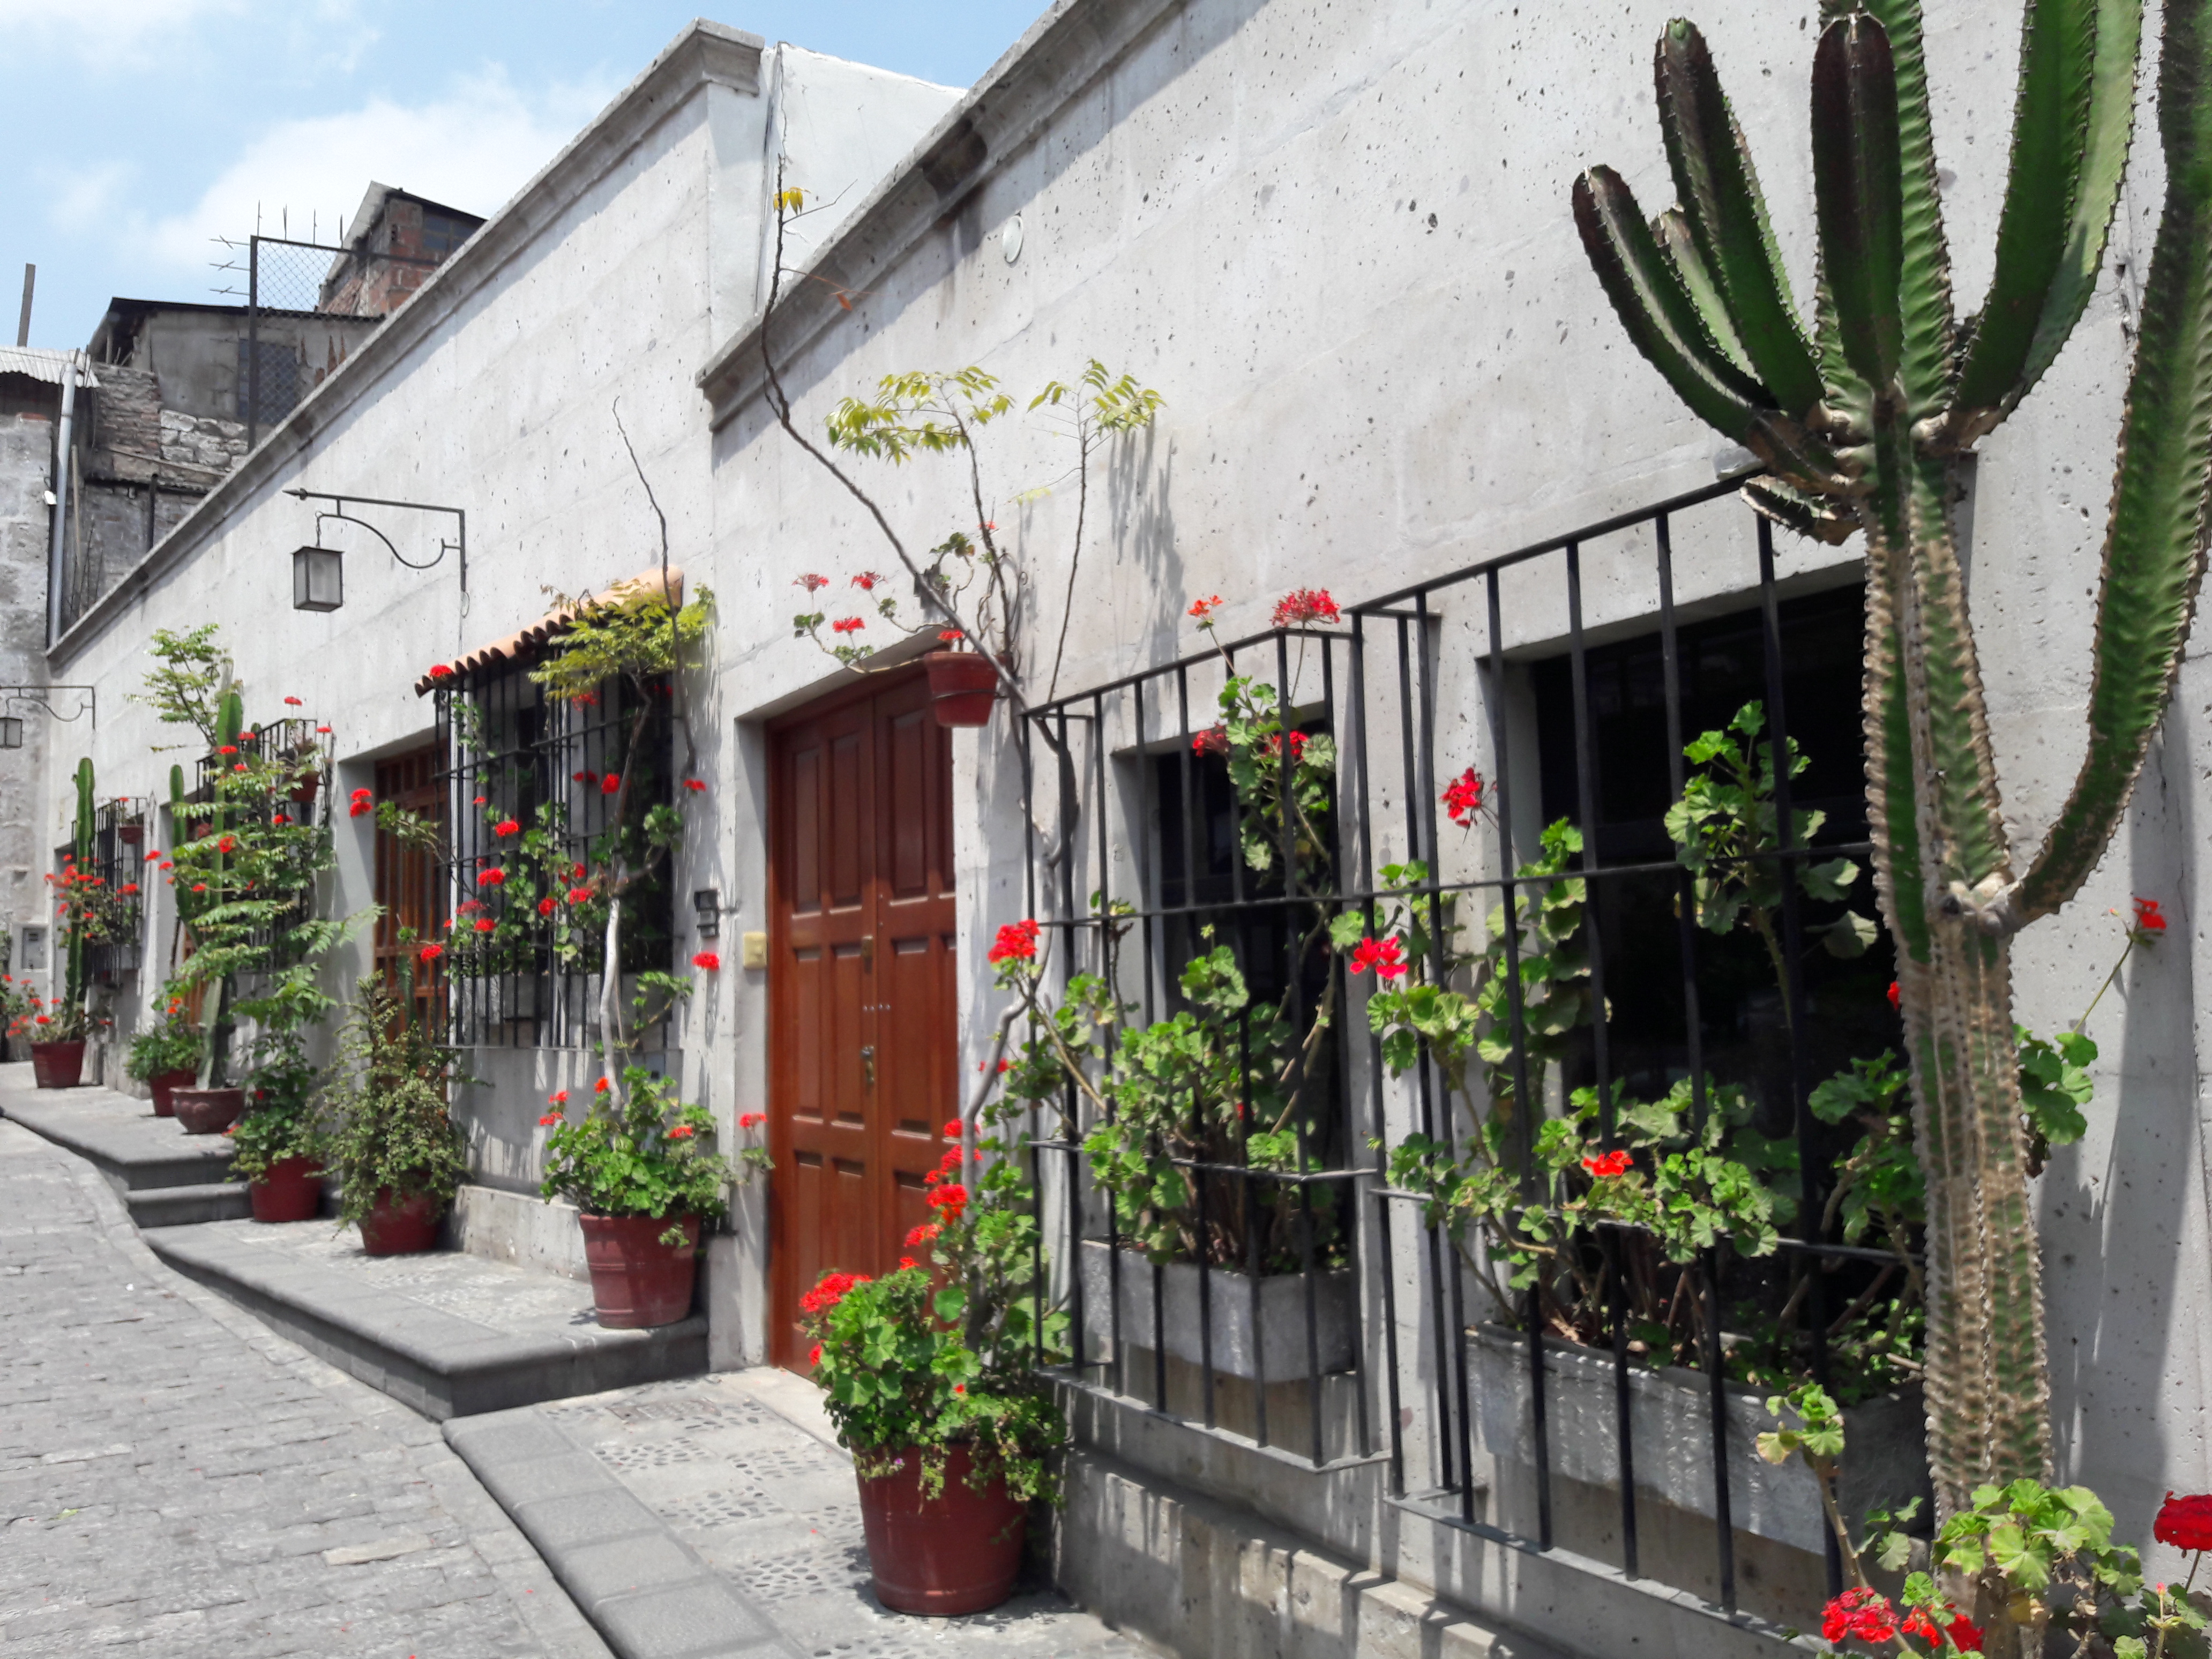 A street with houses with white walls. Cactus plants. Red flowers